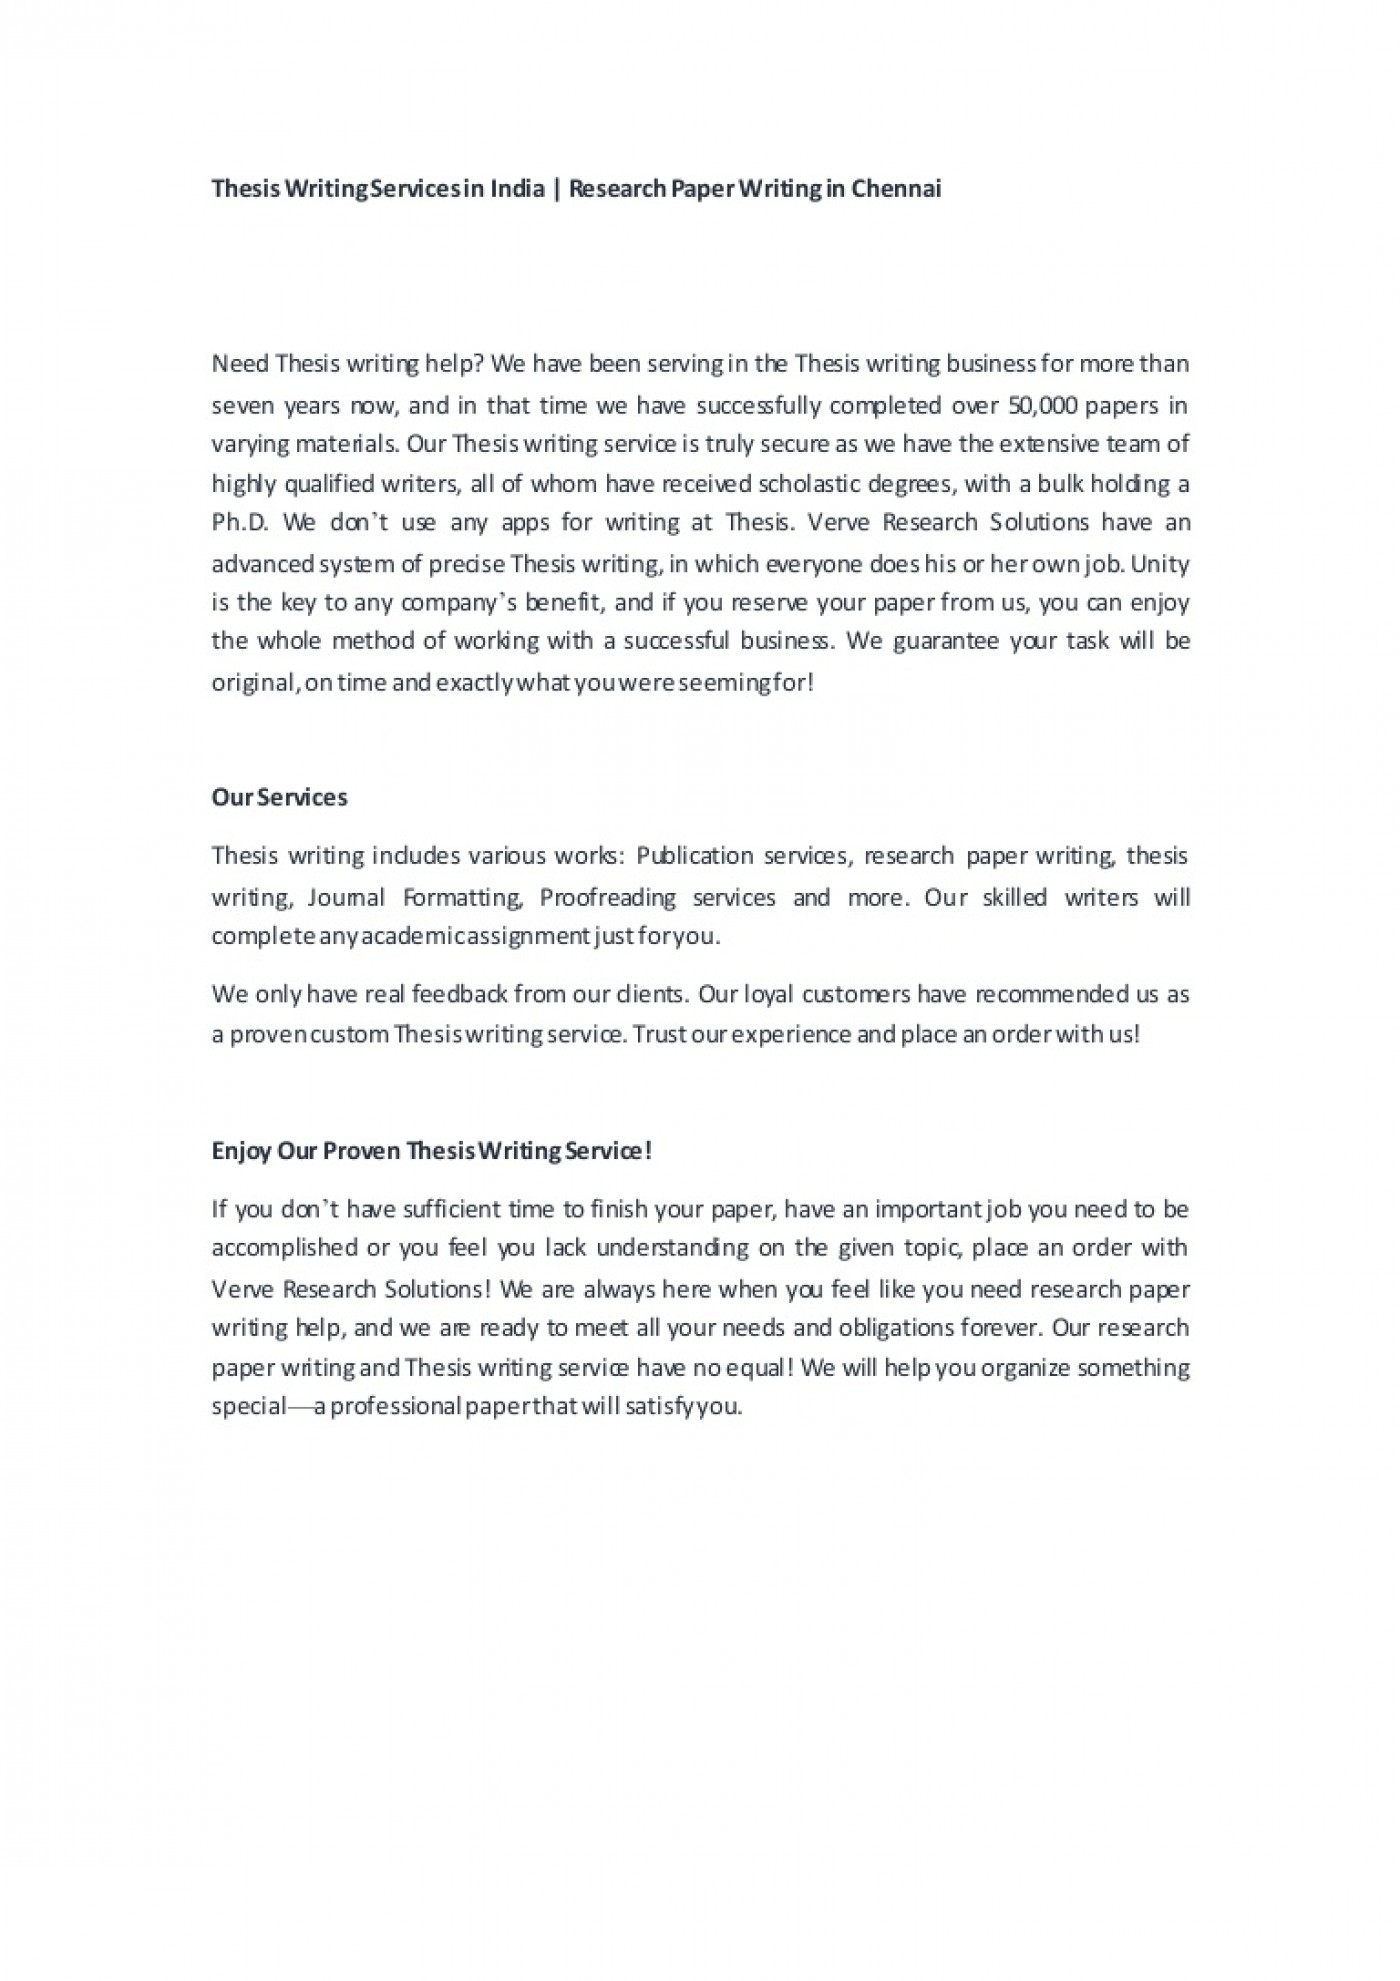 010 Academic Research Paper Writing Services In India Ourexperience Thumbnail Marvelous Best 1400